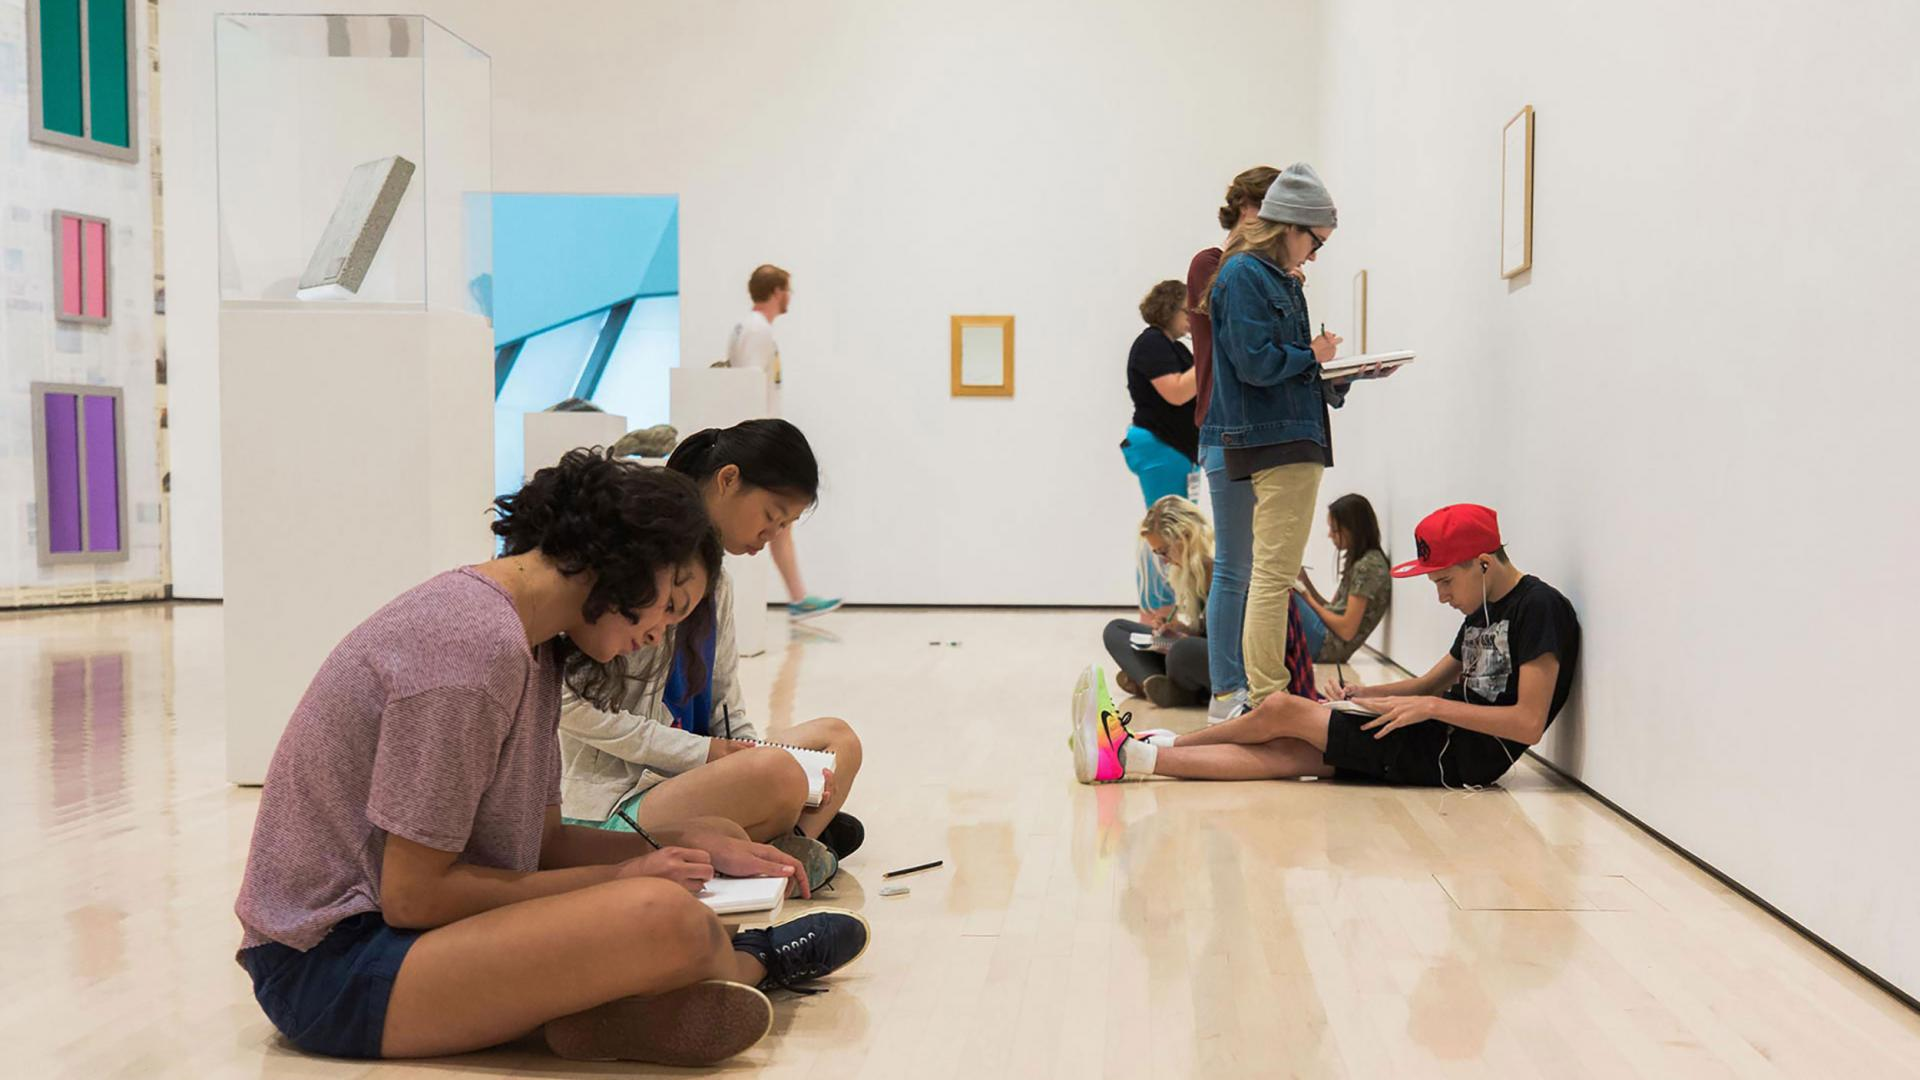 People sitting on a art gallery floor